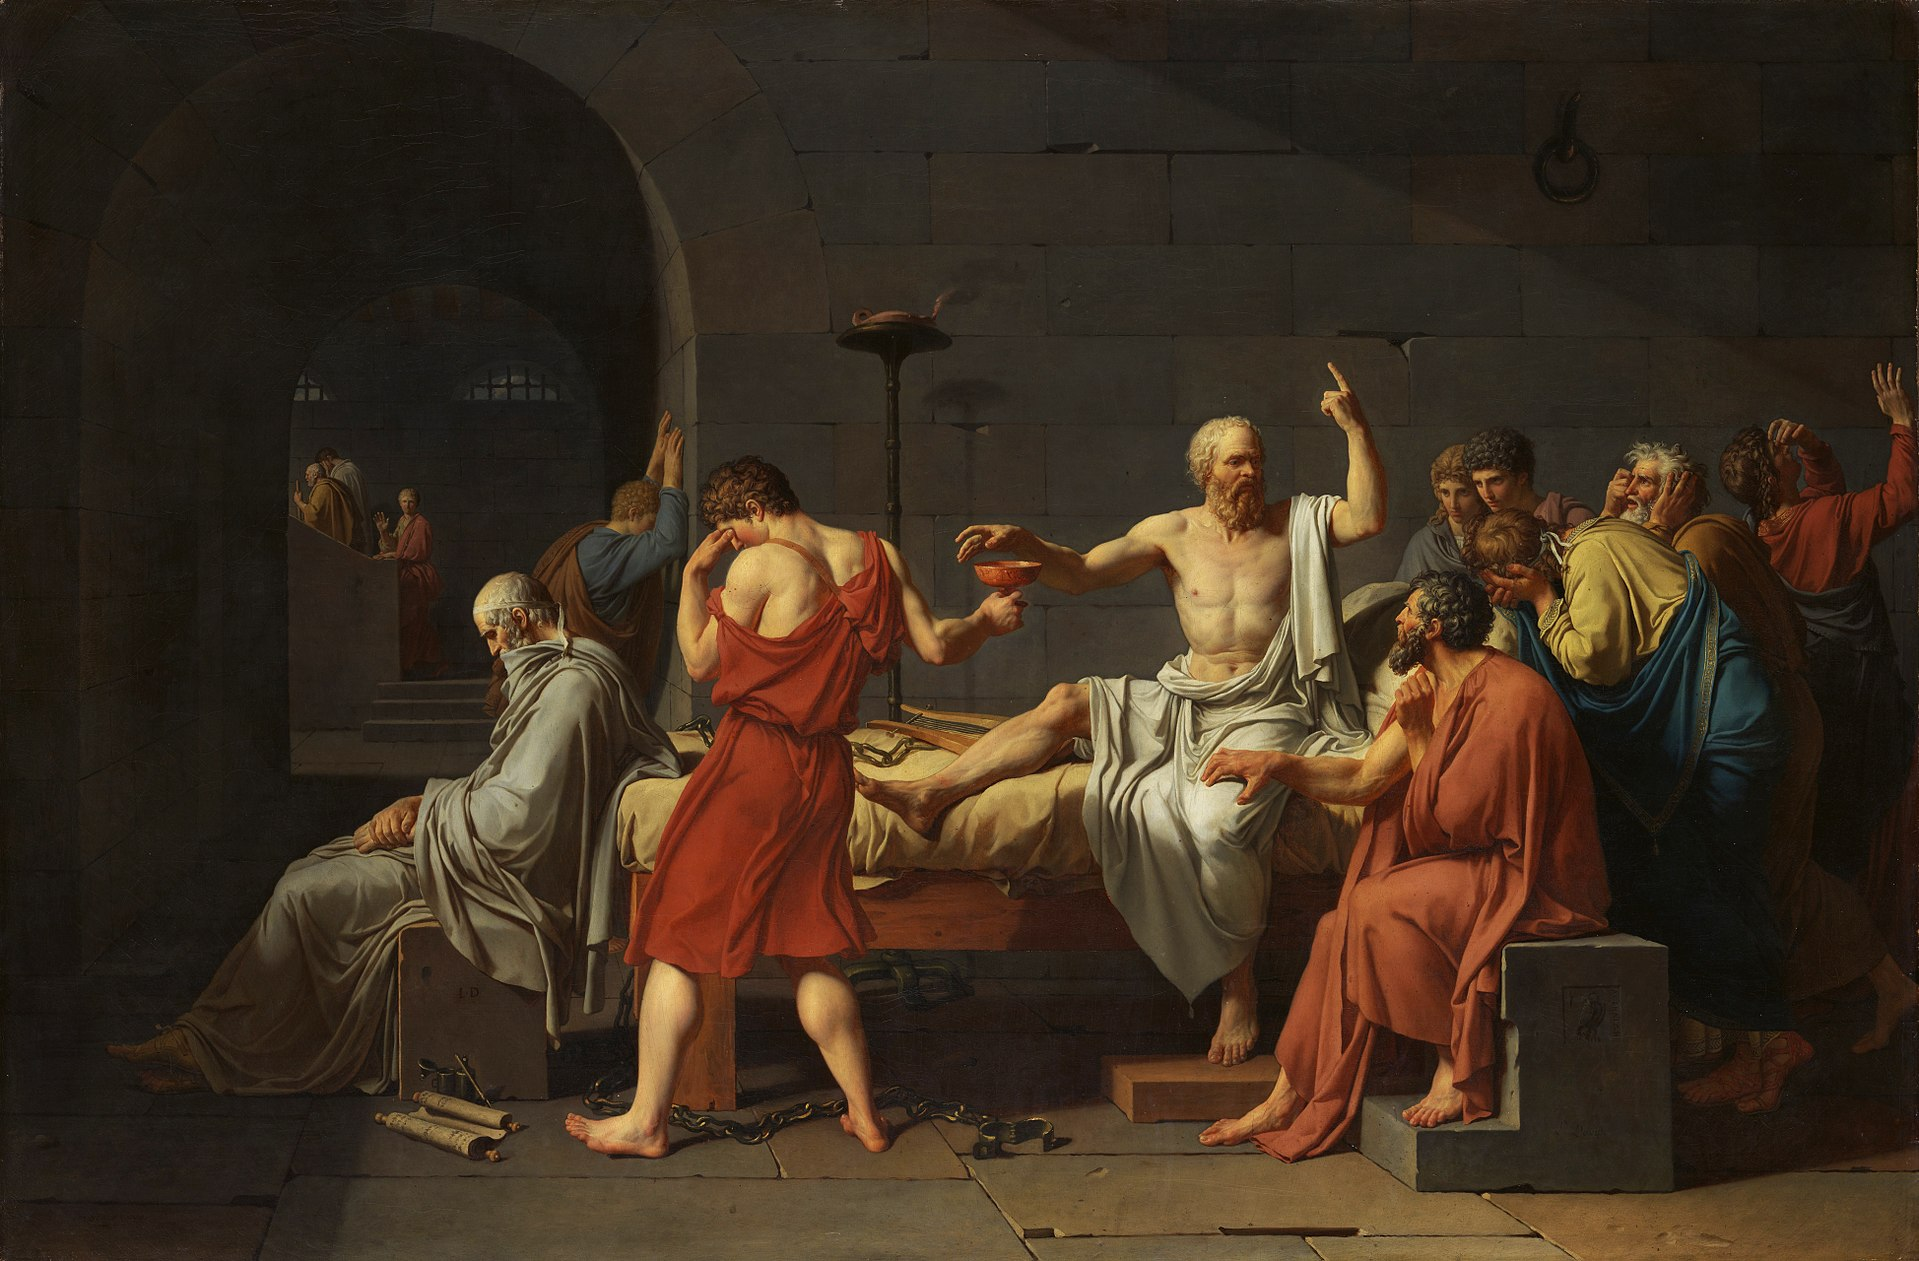 1920px-David_-_The_Death_of_Socrates.jpg